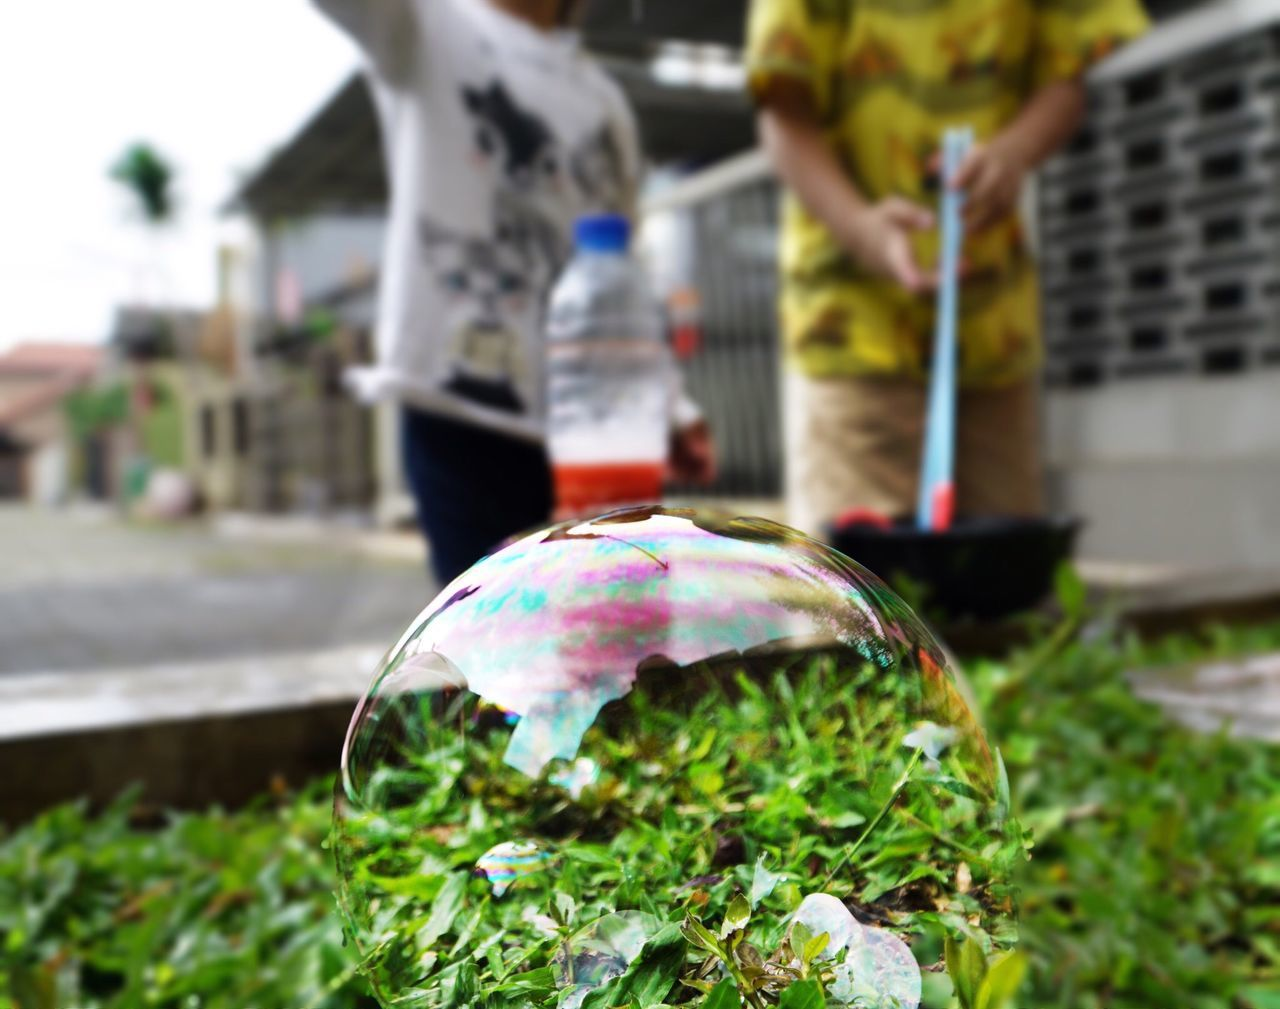 real people, day, outdoors, close-up, fragility, one person, nature, bubble wand